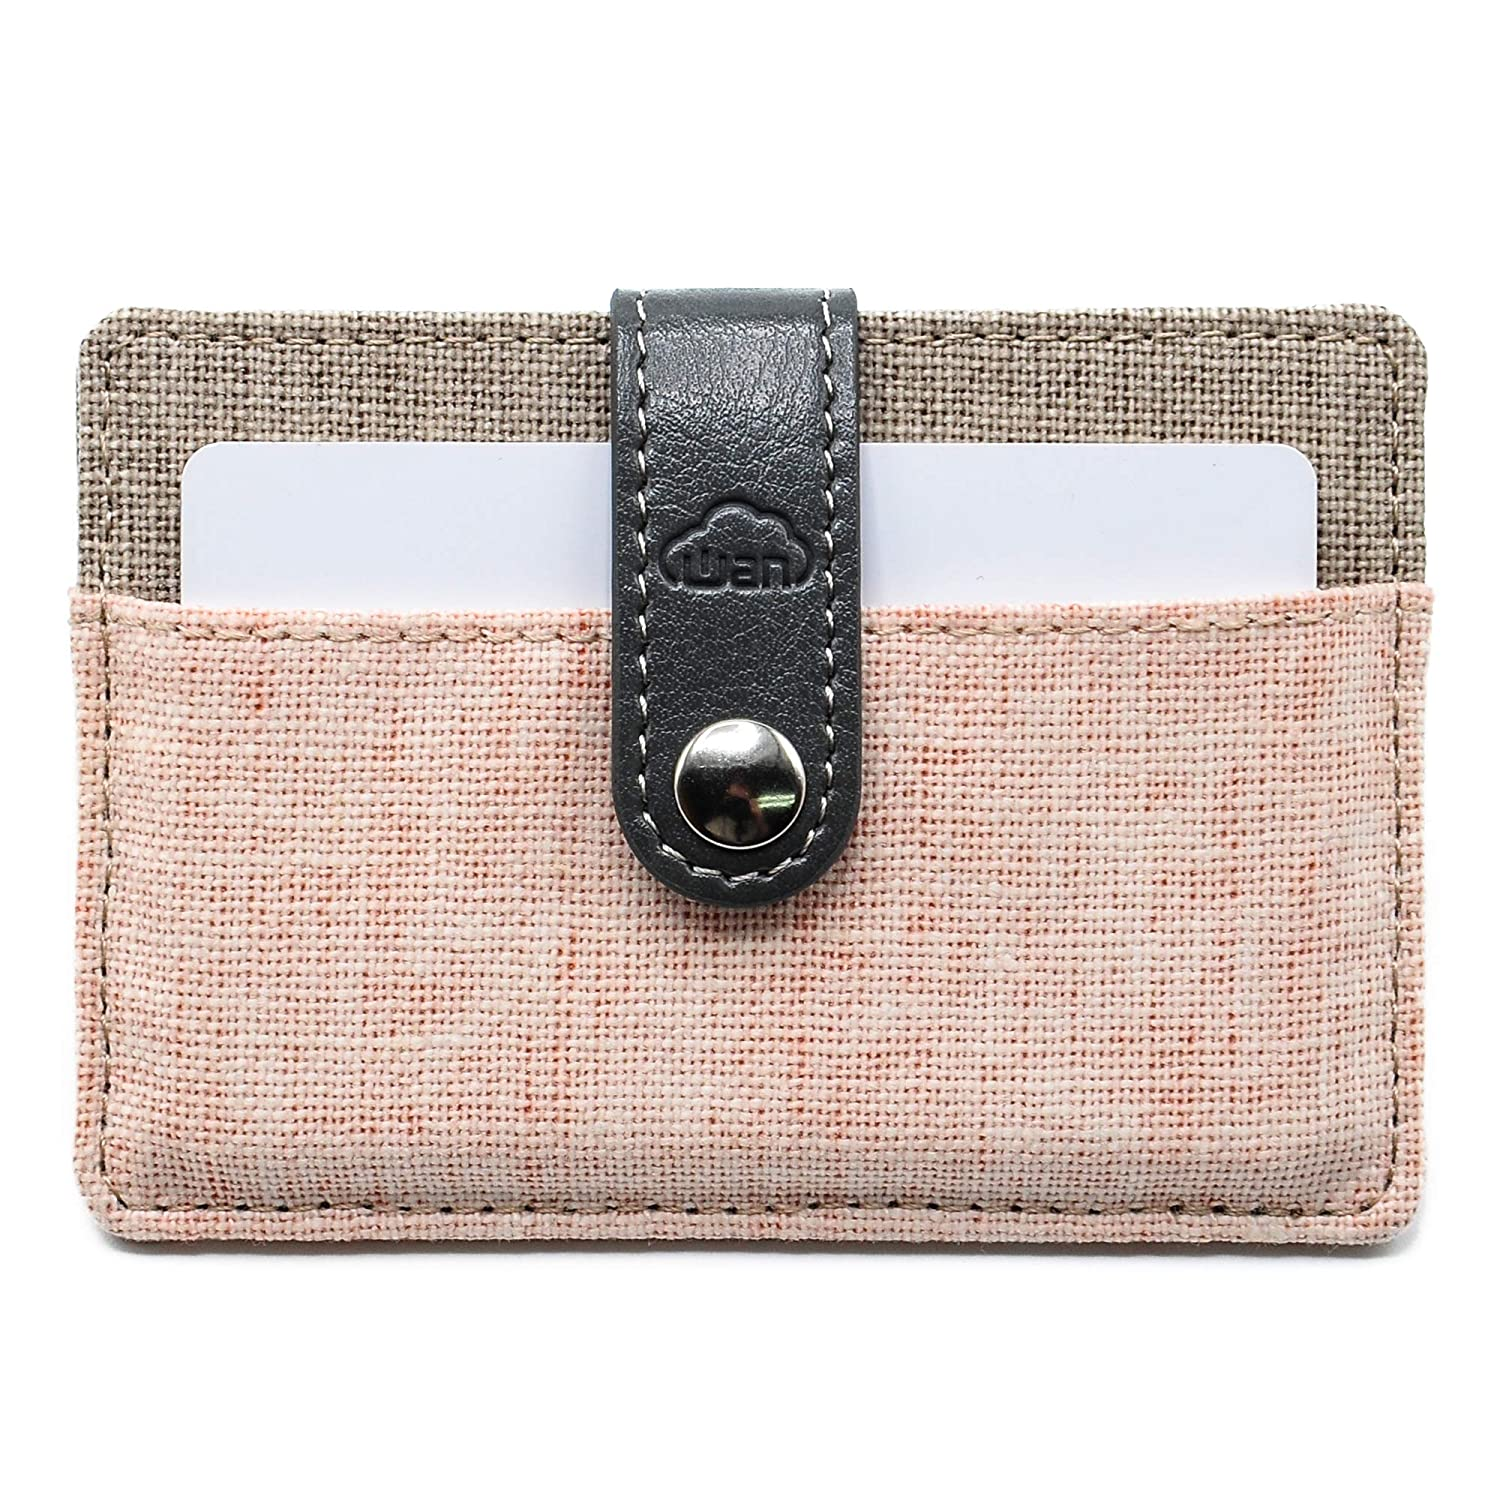 Fashion Series - Card Holder, 2 Pockets for 6-12 Cards, Secure with PU Leather Strap, Slim Fabric Design (Beige Turquoise)